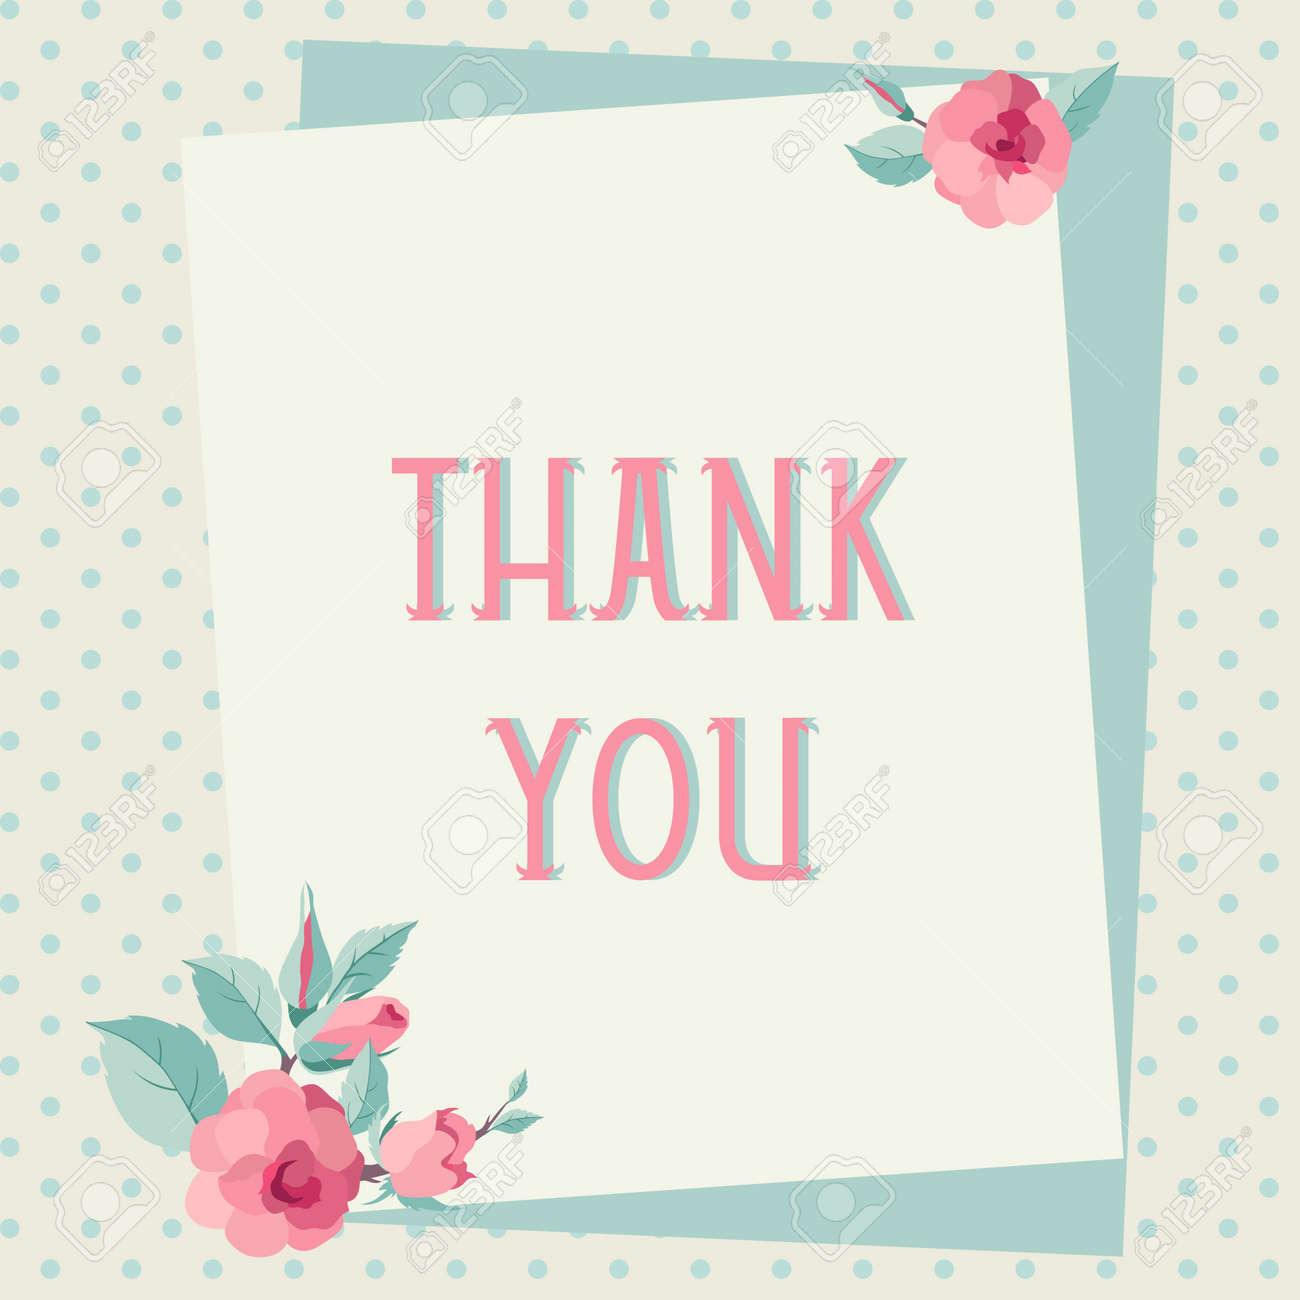 Thank you card template with roses vintage letters royalty free thank you card template with roses vintage letters stock vector 29834441 maxwellsz